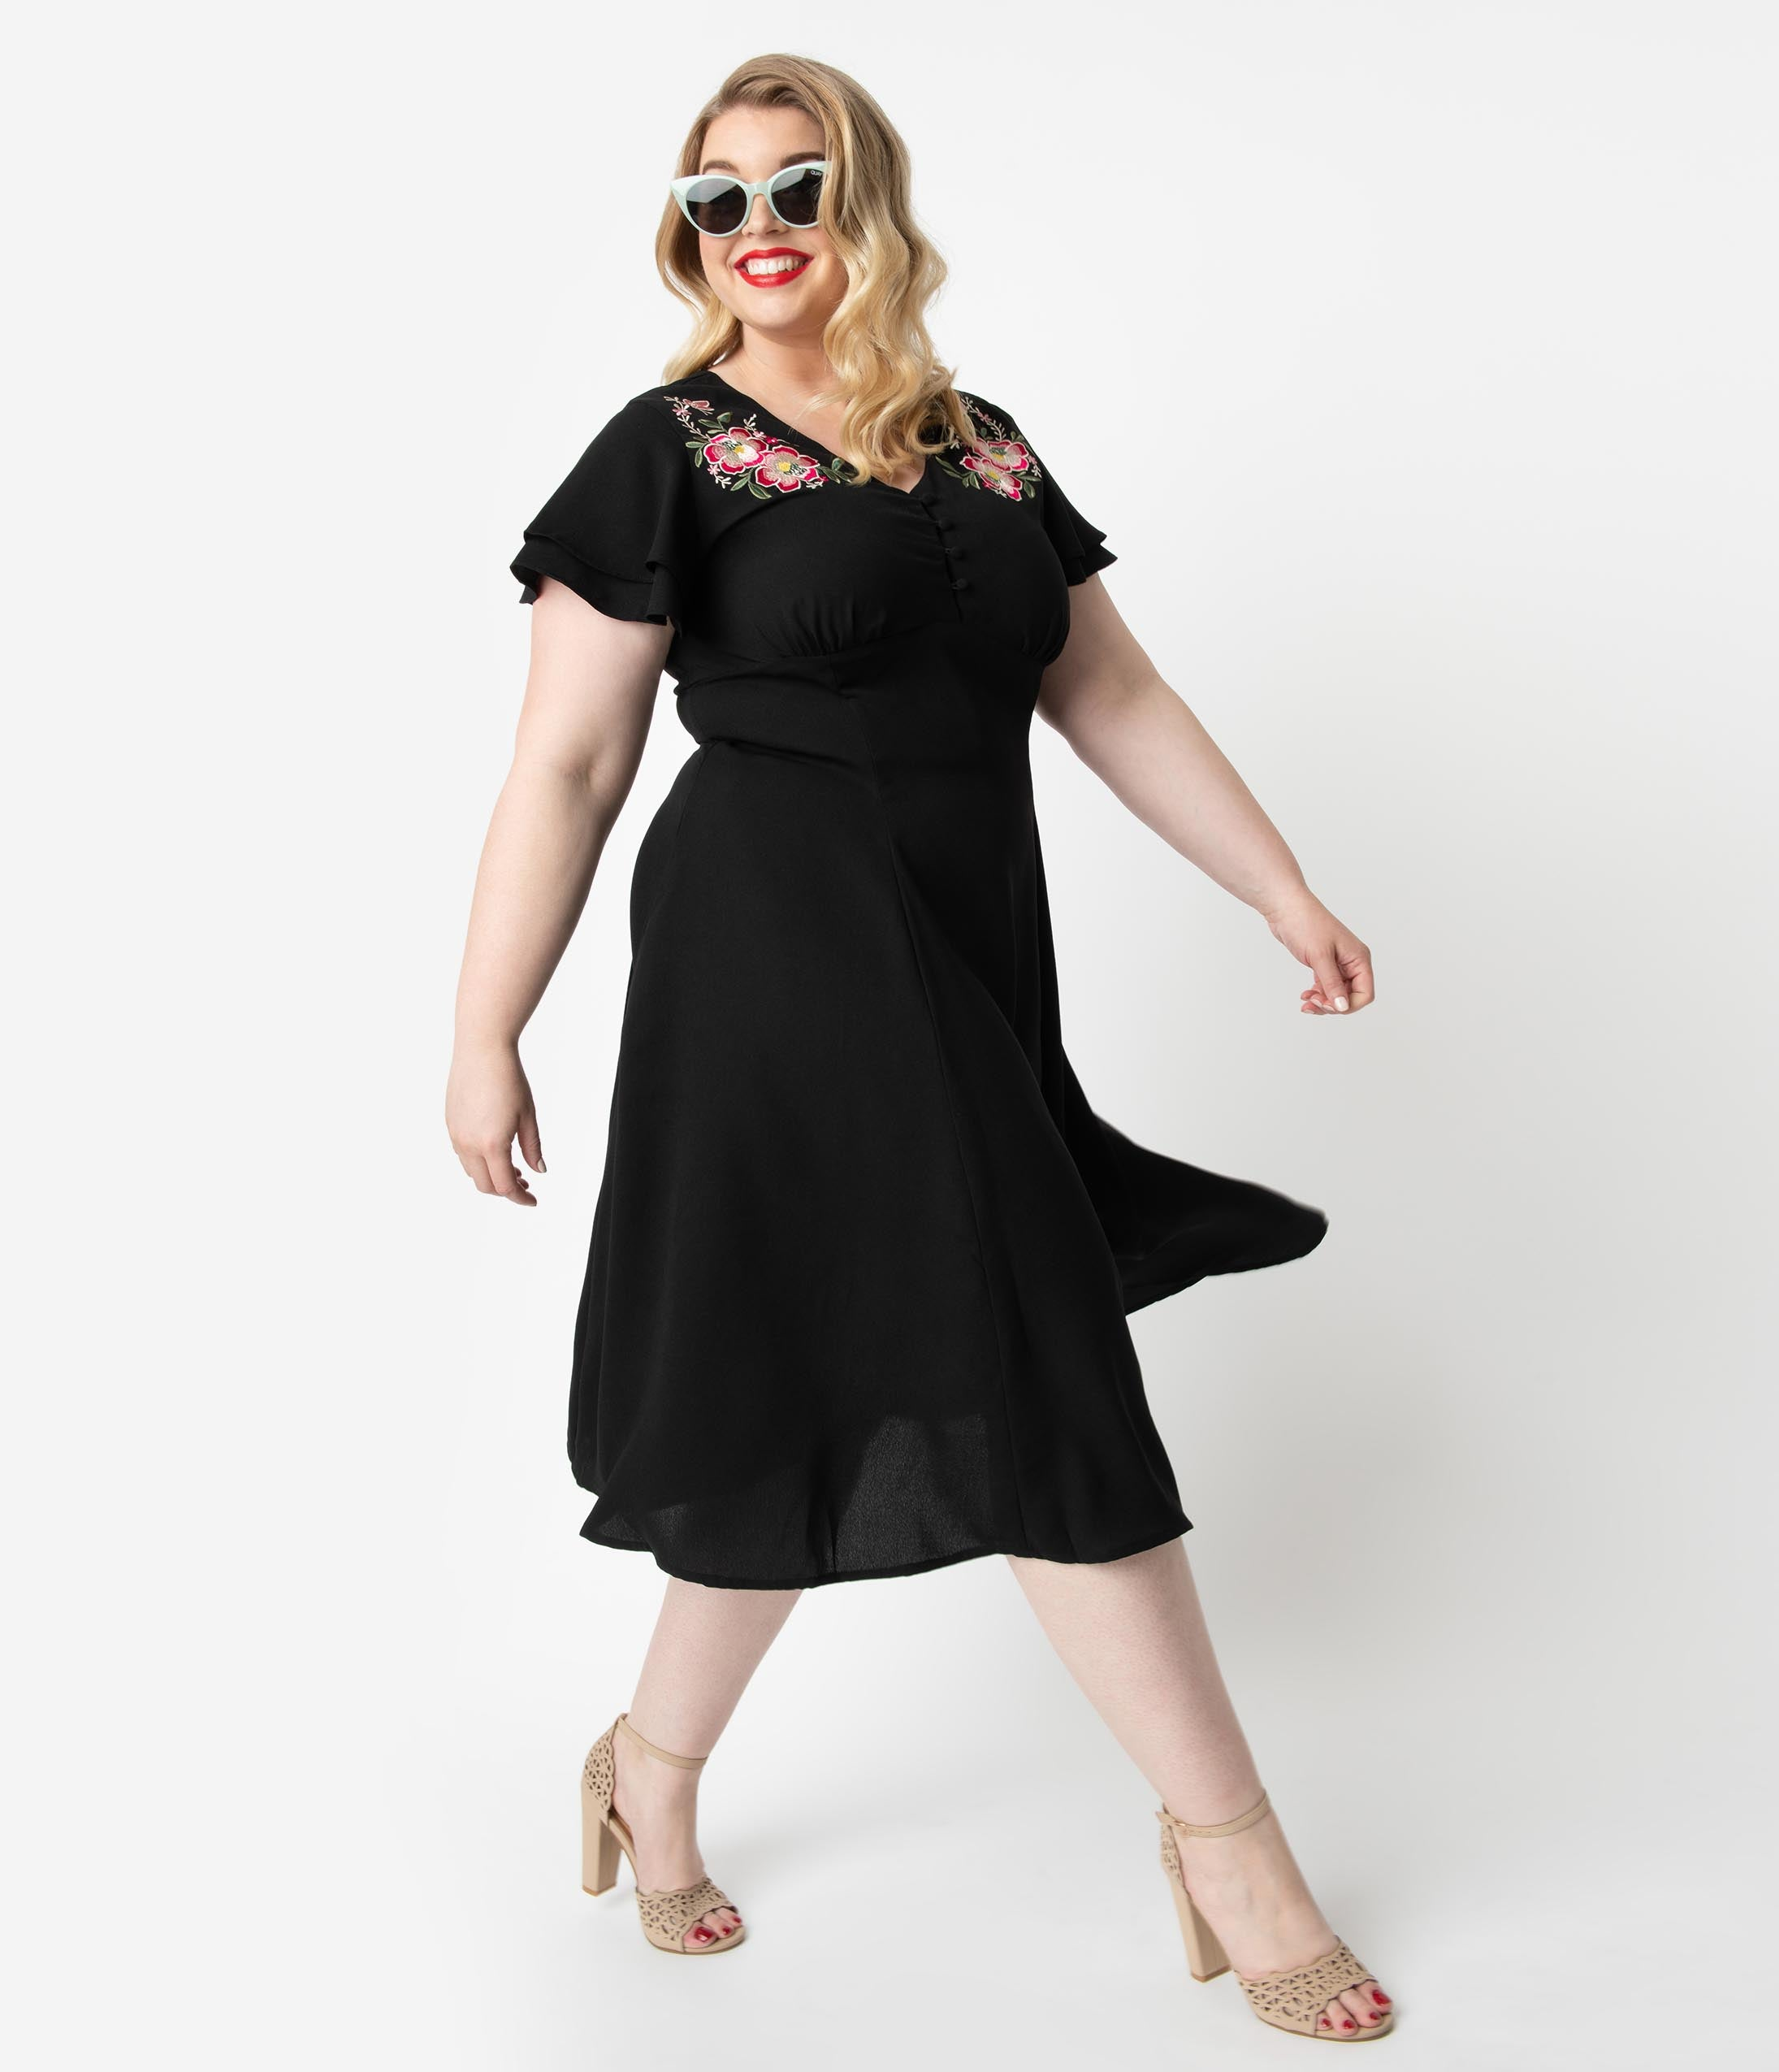 Plus Size Pin Up Dresses | Plus Size Rockabilly Dresses Plus Size 1940S Style Black  Pink Floral Embroidery Irena Swing Dress $68.00 AT vintagedancer.com